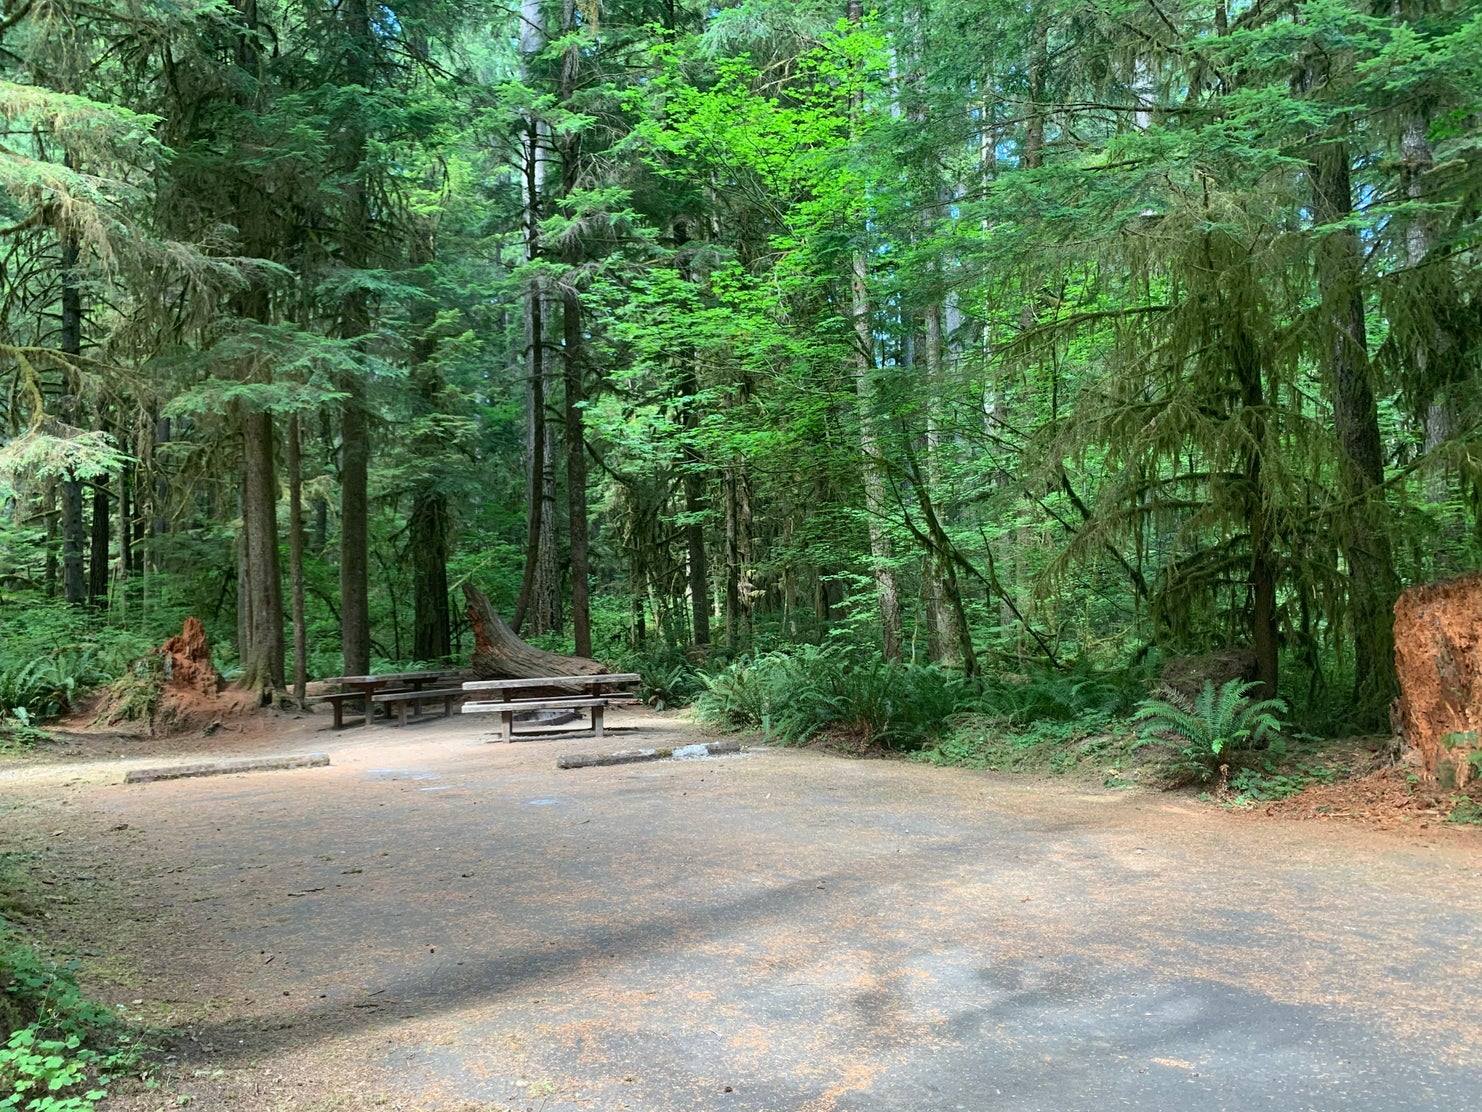 empty campsite in washington rainforest